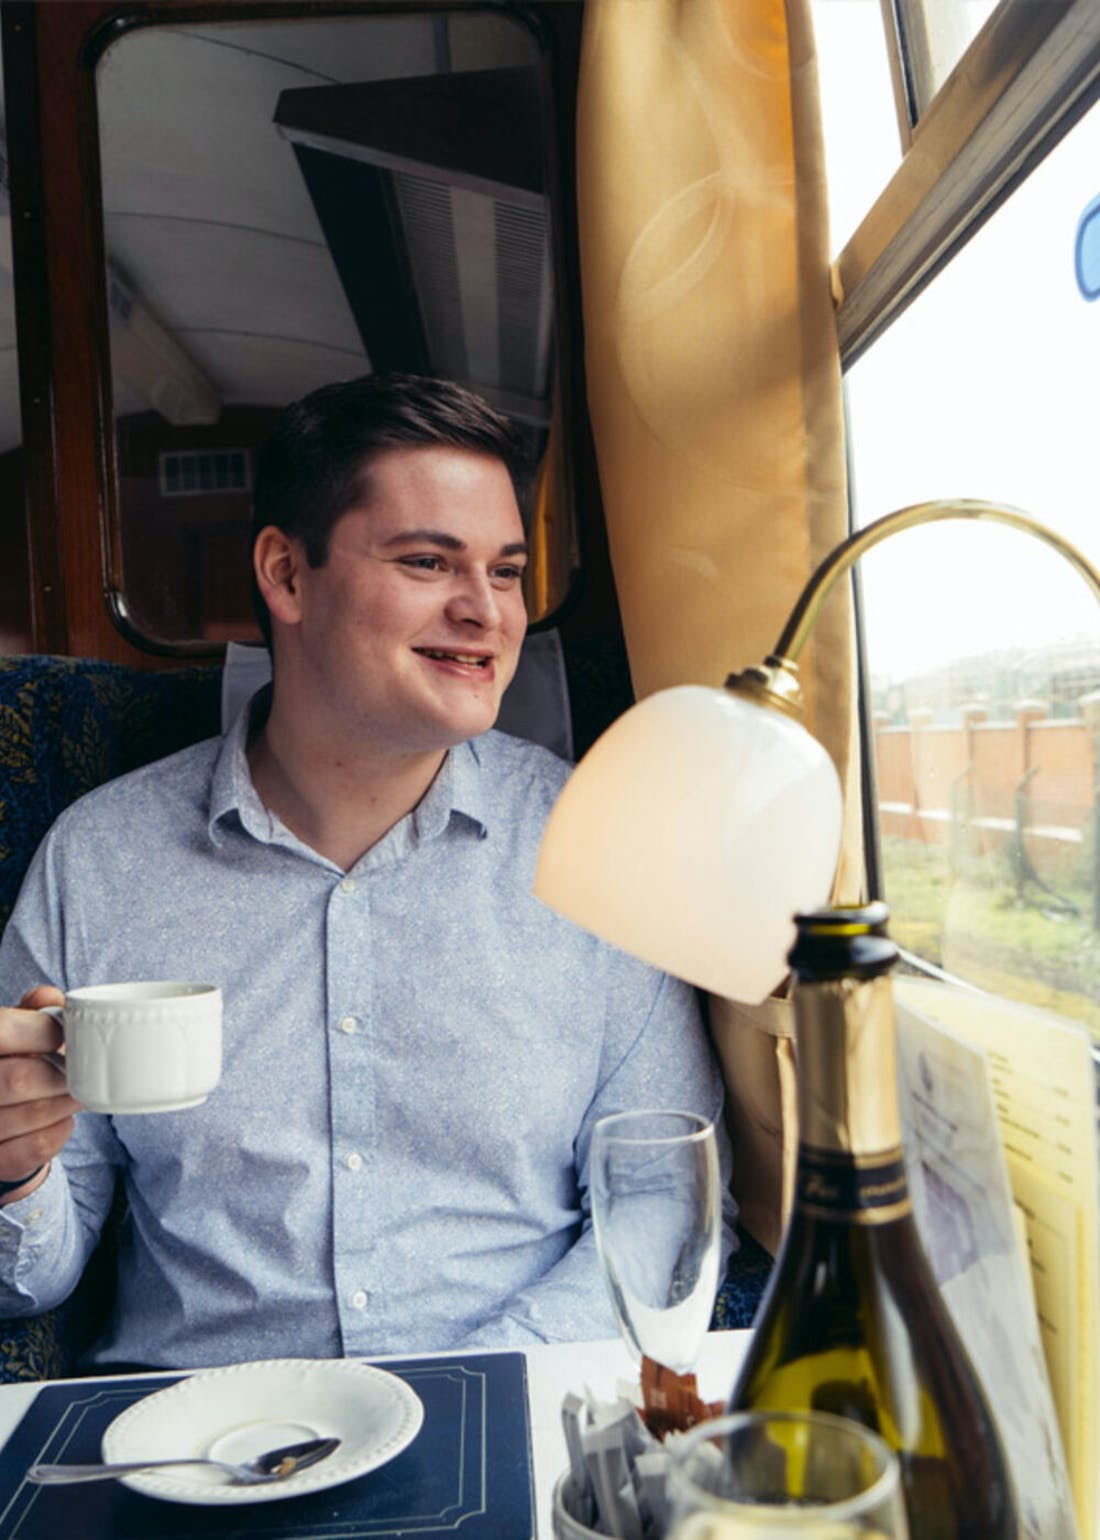 Virgin Experience Days Great Central Railway Steam Train Trip for 2